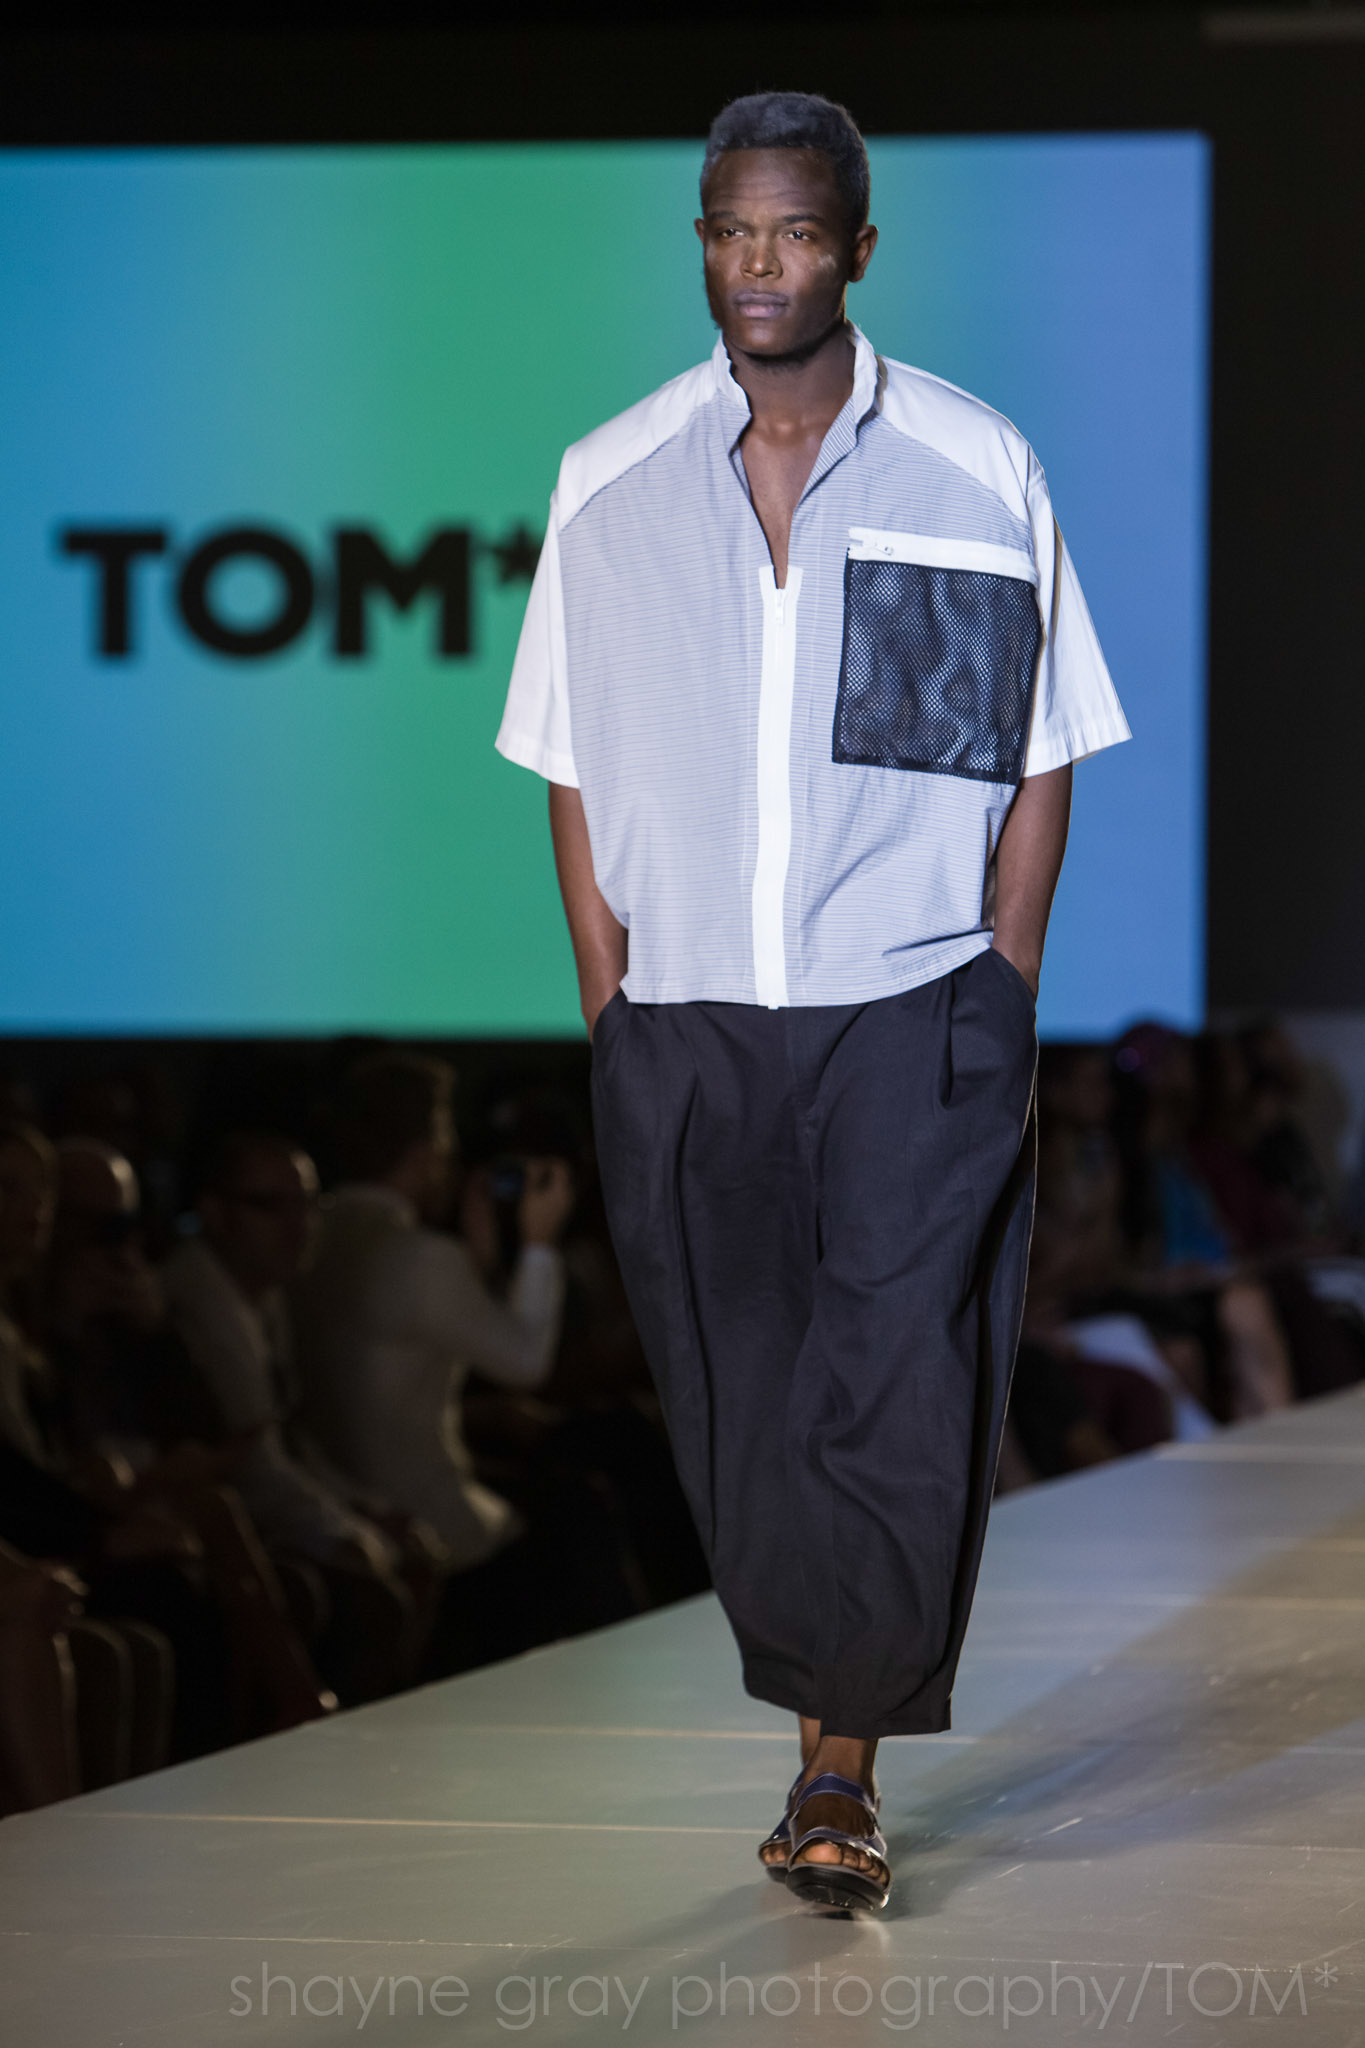 Shayne-Gray-Toronto-men's-fashion_week-TOM-jose-duran-7755.jpg